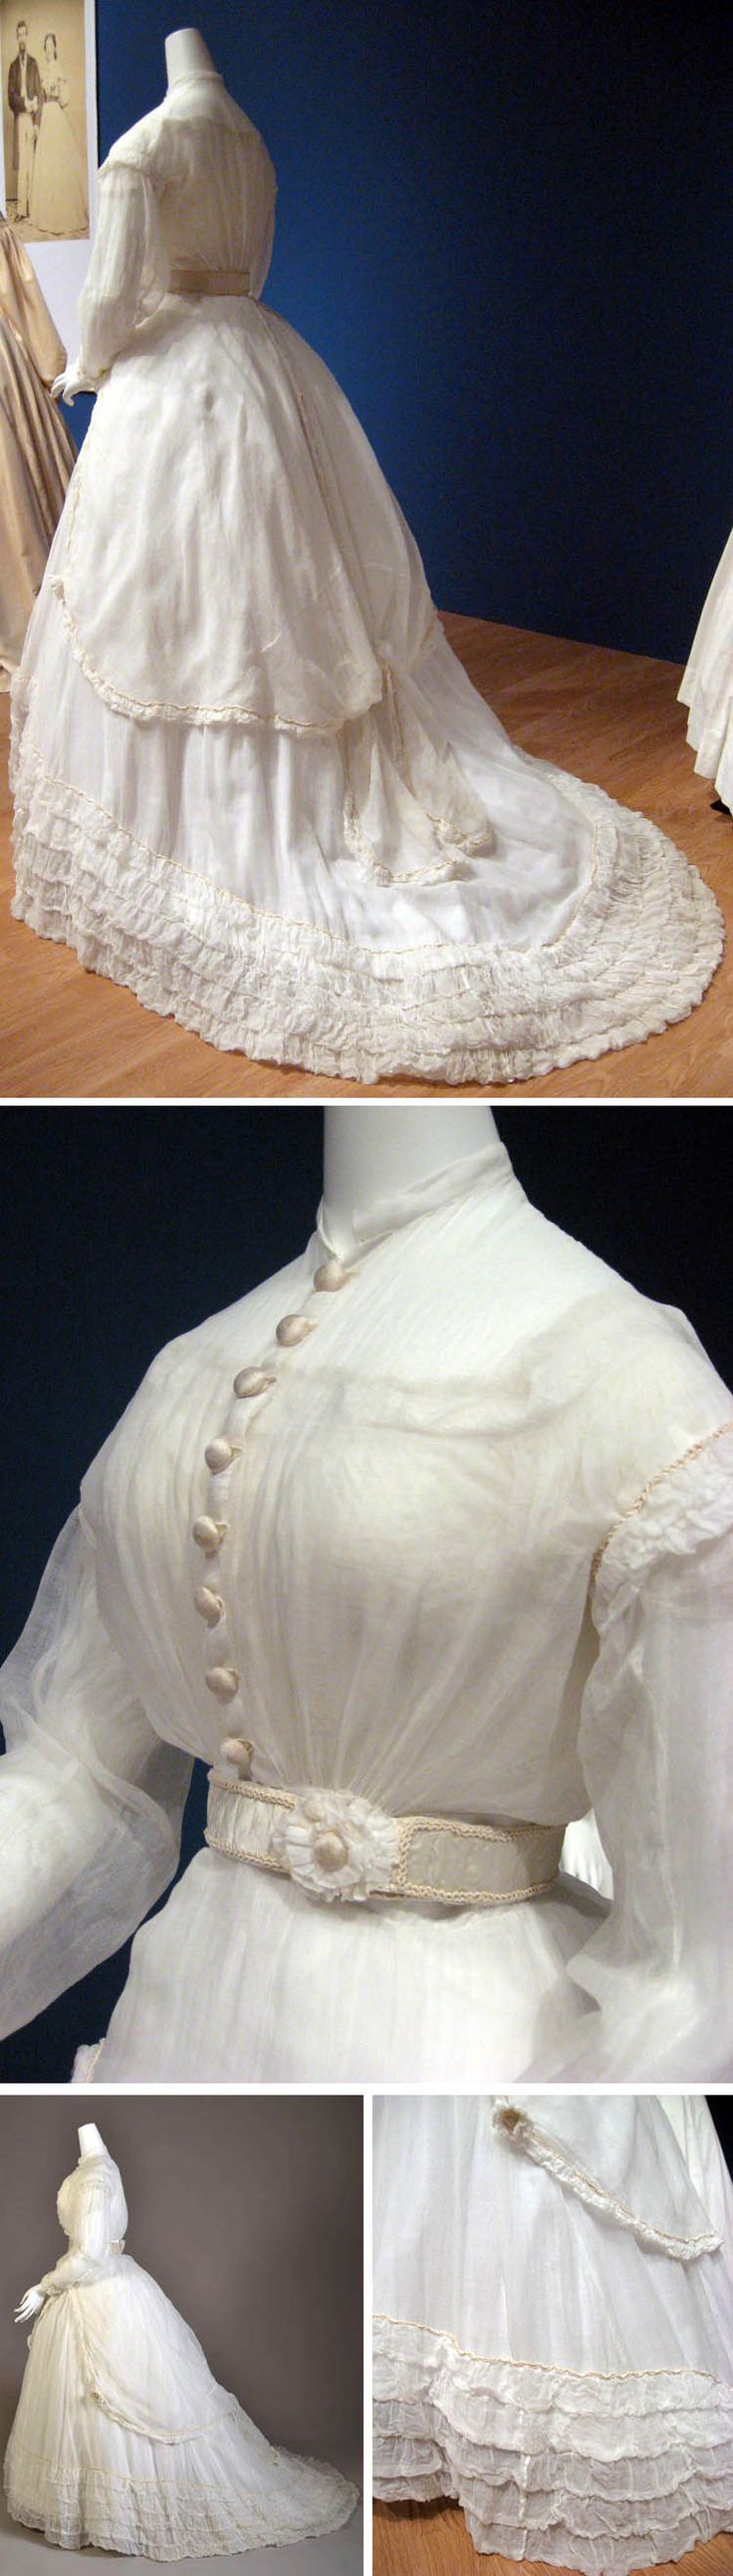 Wedding gown, American, 1868. Cotton gauze with satin belt, cotton corset cover, and petticoat. Kent State Univ. Museum via Angela Thornhill's Pinterest boards and other Pinterest boards.